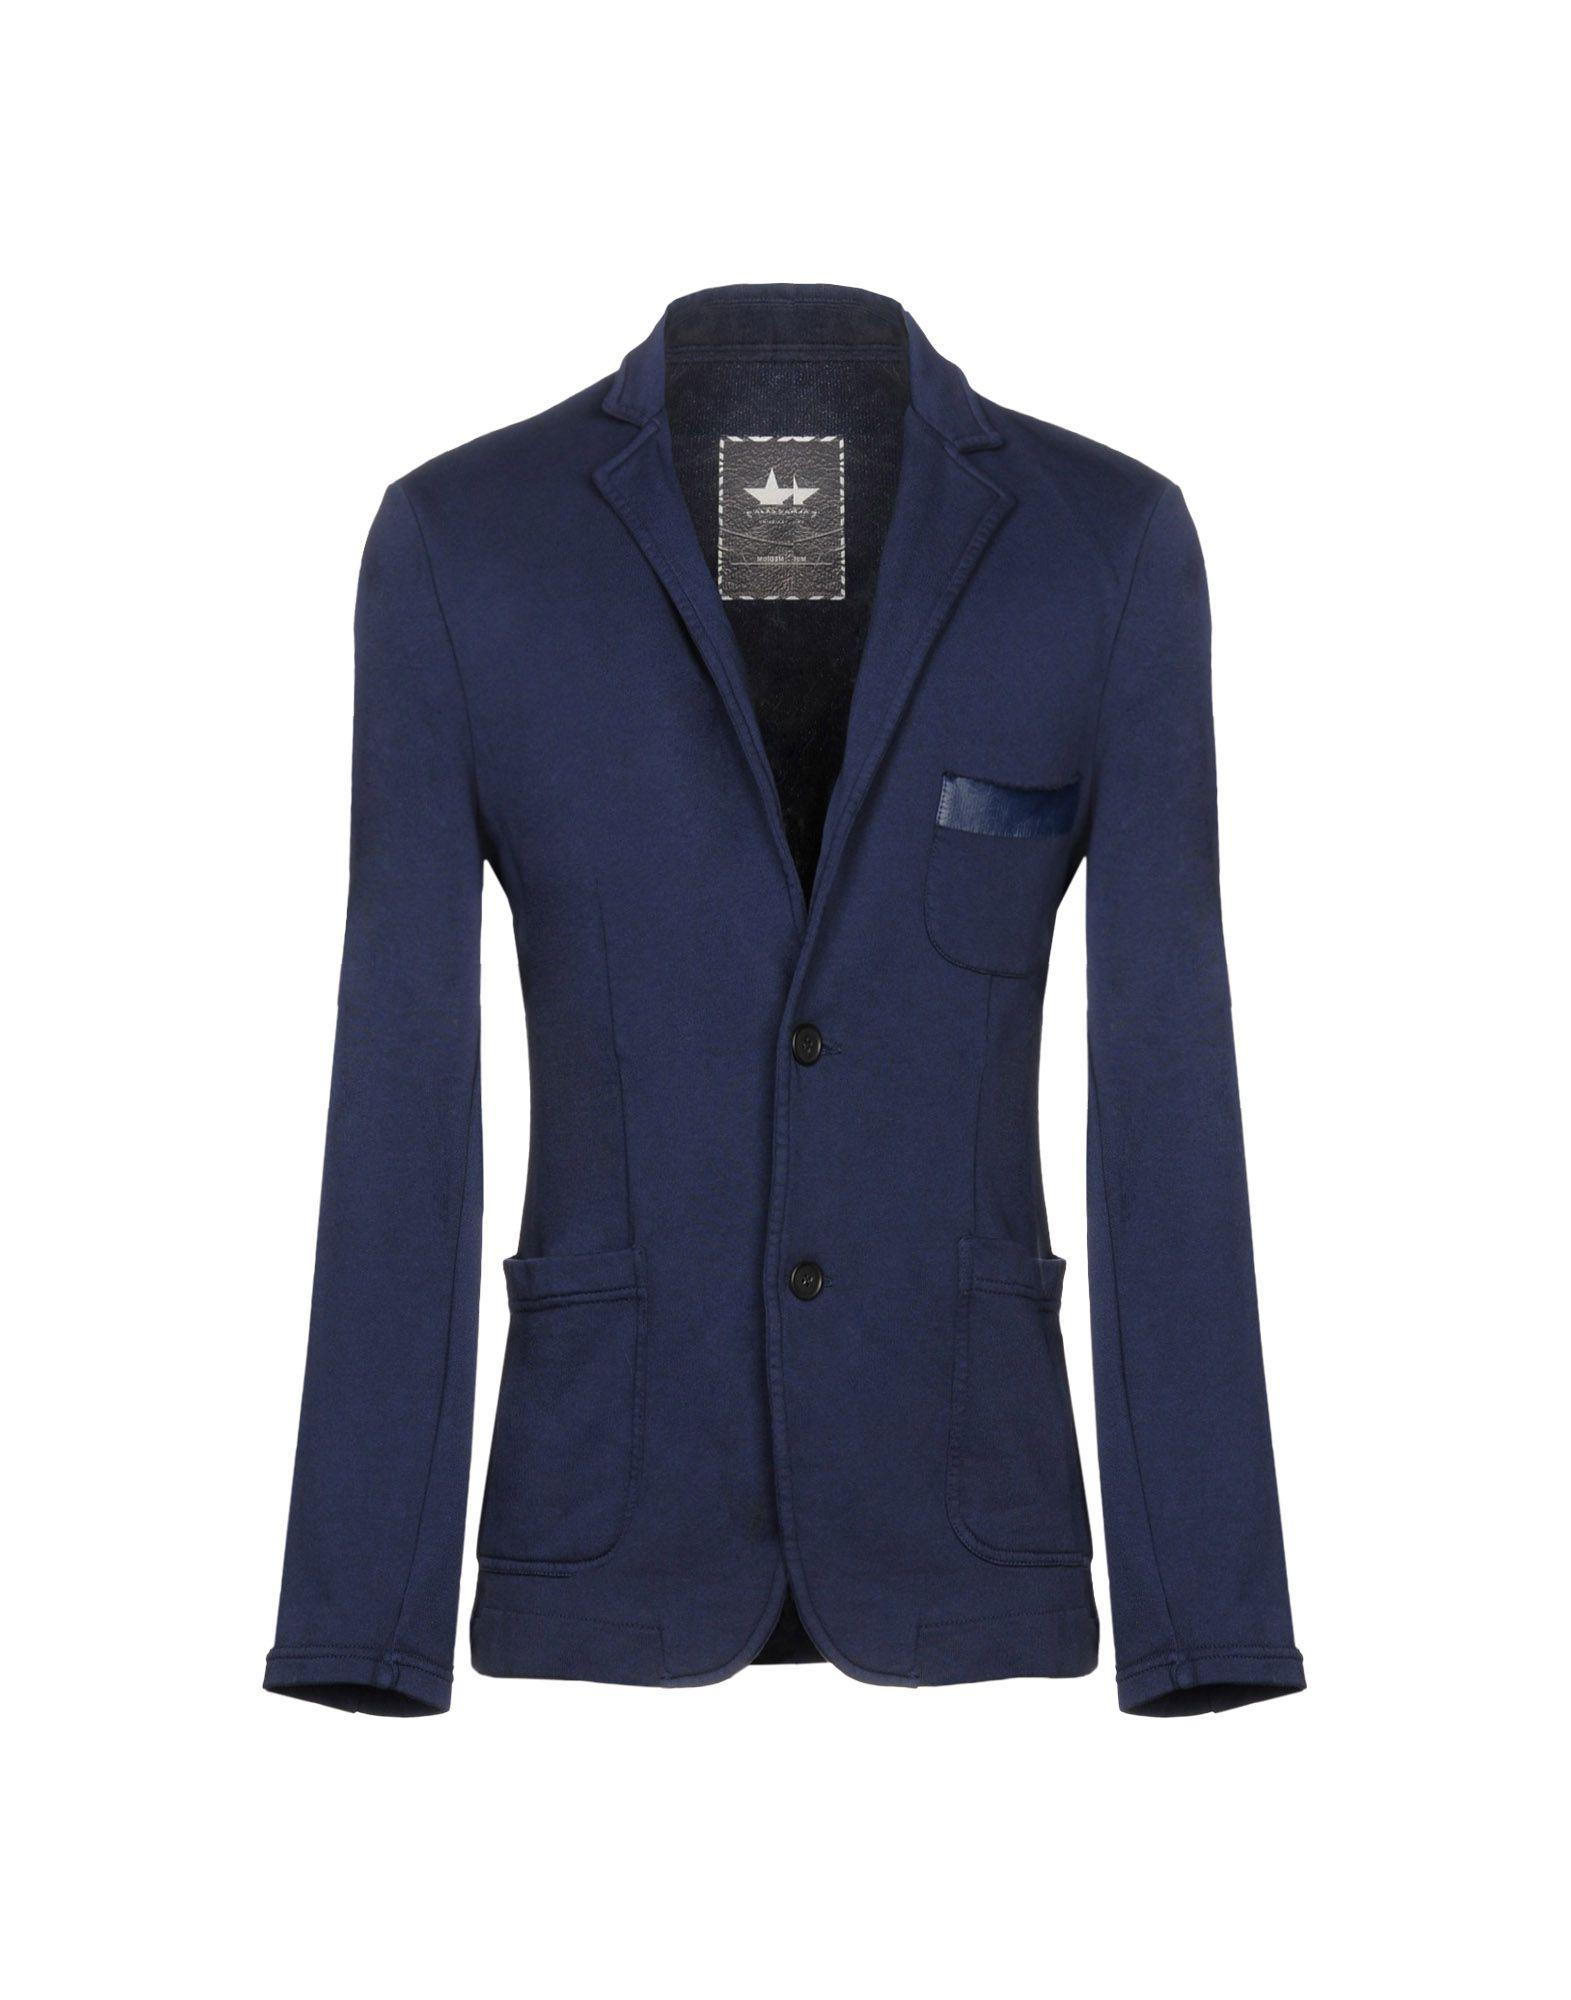 Official Cheap Online Sale 2018 SUITS AND JACKETS - Waistcoats Macchia j Cheap Sale Latest Collections Sale Cheap Footlocker Cheap Price HMkUW